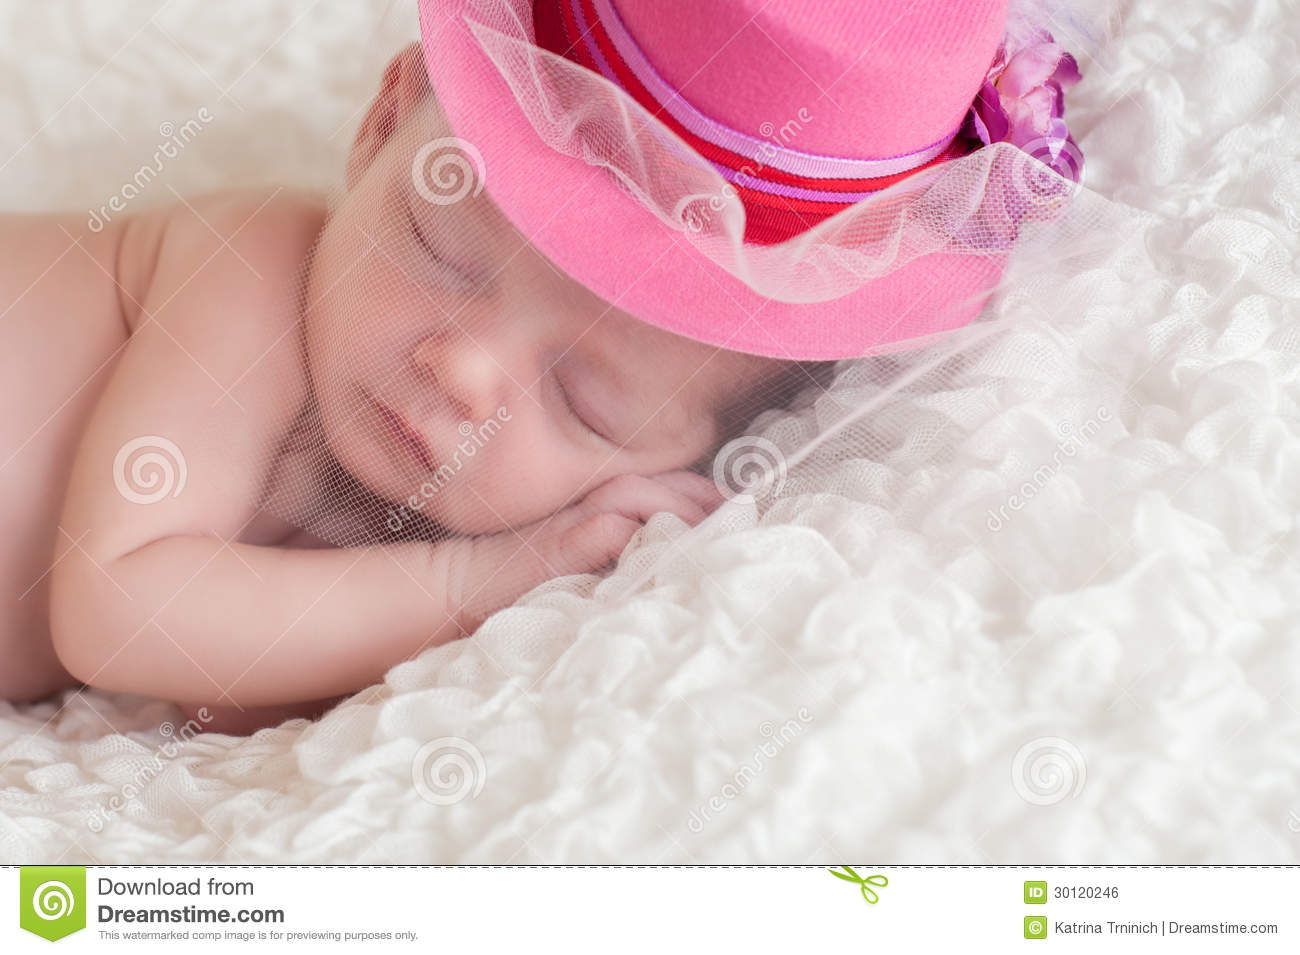 Newborn Baby Girl Wearing A Fancy Pink Hat Stock Photo - Image of ... 9b4f13f8f9d1